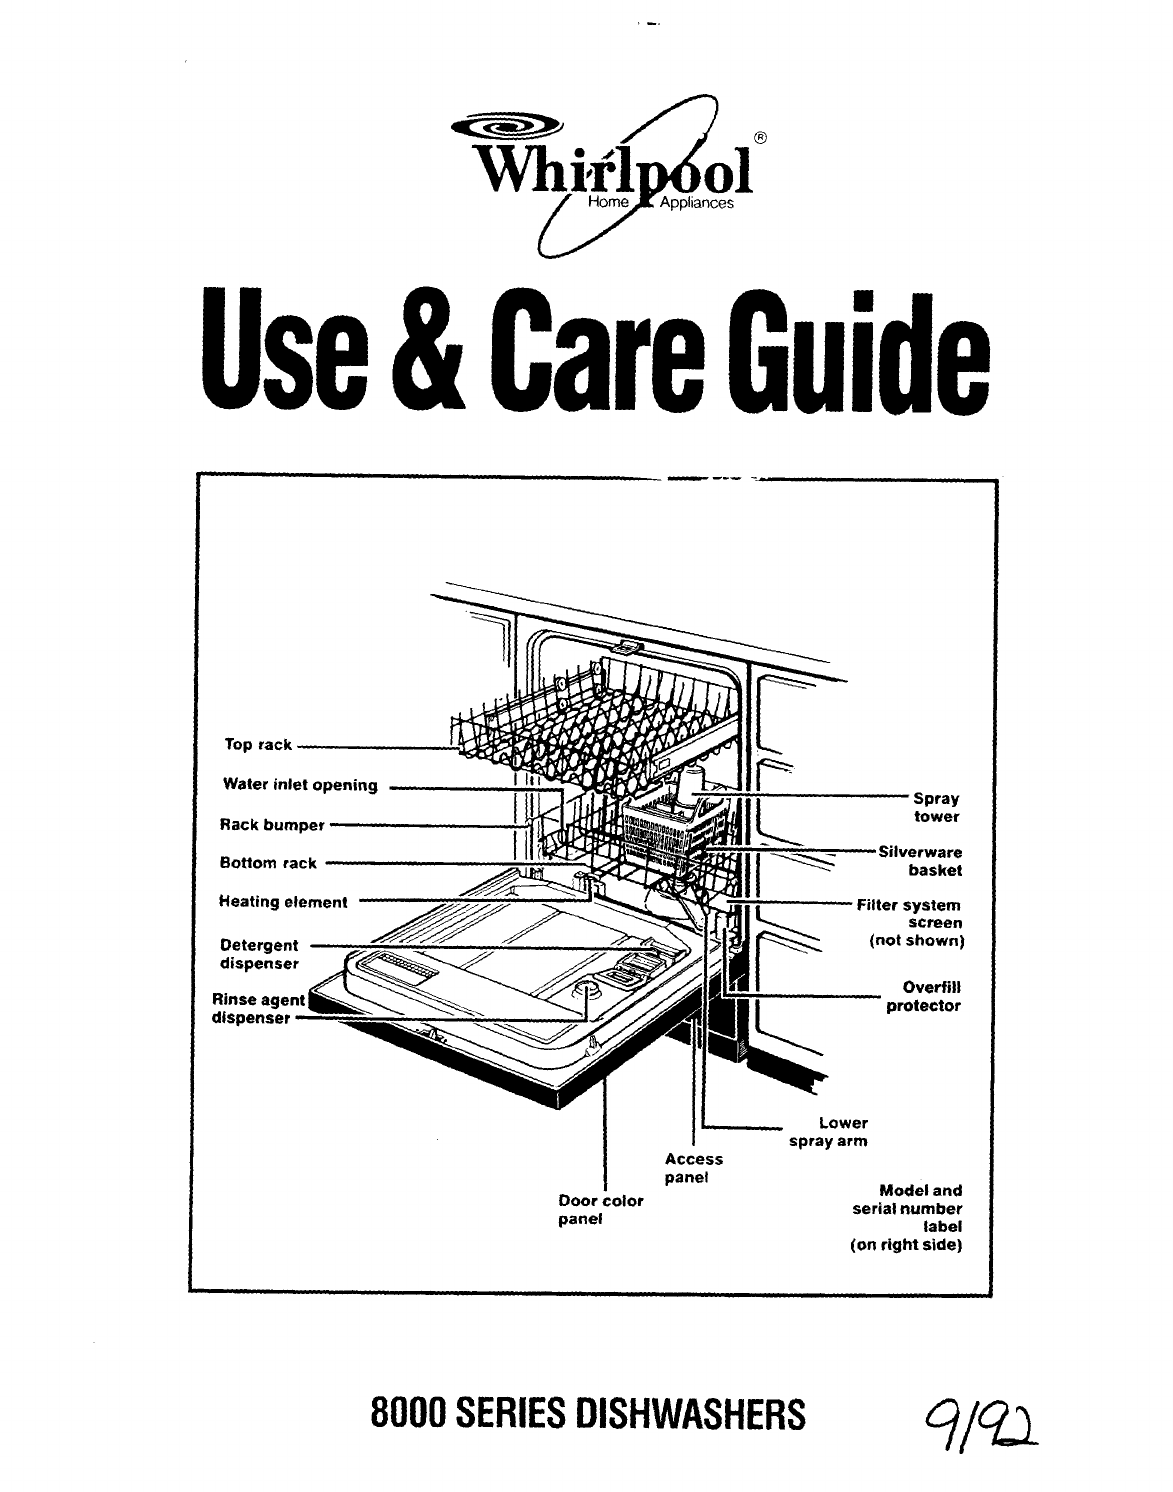 whirlpool car stereo system user manual various owner manual guide u2022 rh justk co whirlpool dishwasher owner manual du1300xtvt8 whirlpool dishwasher service manual download